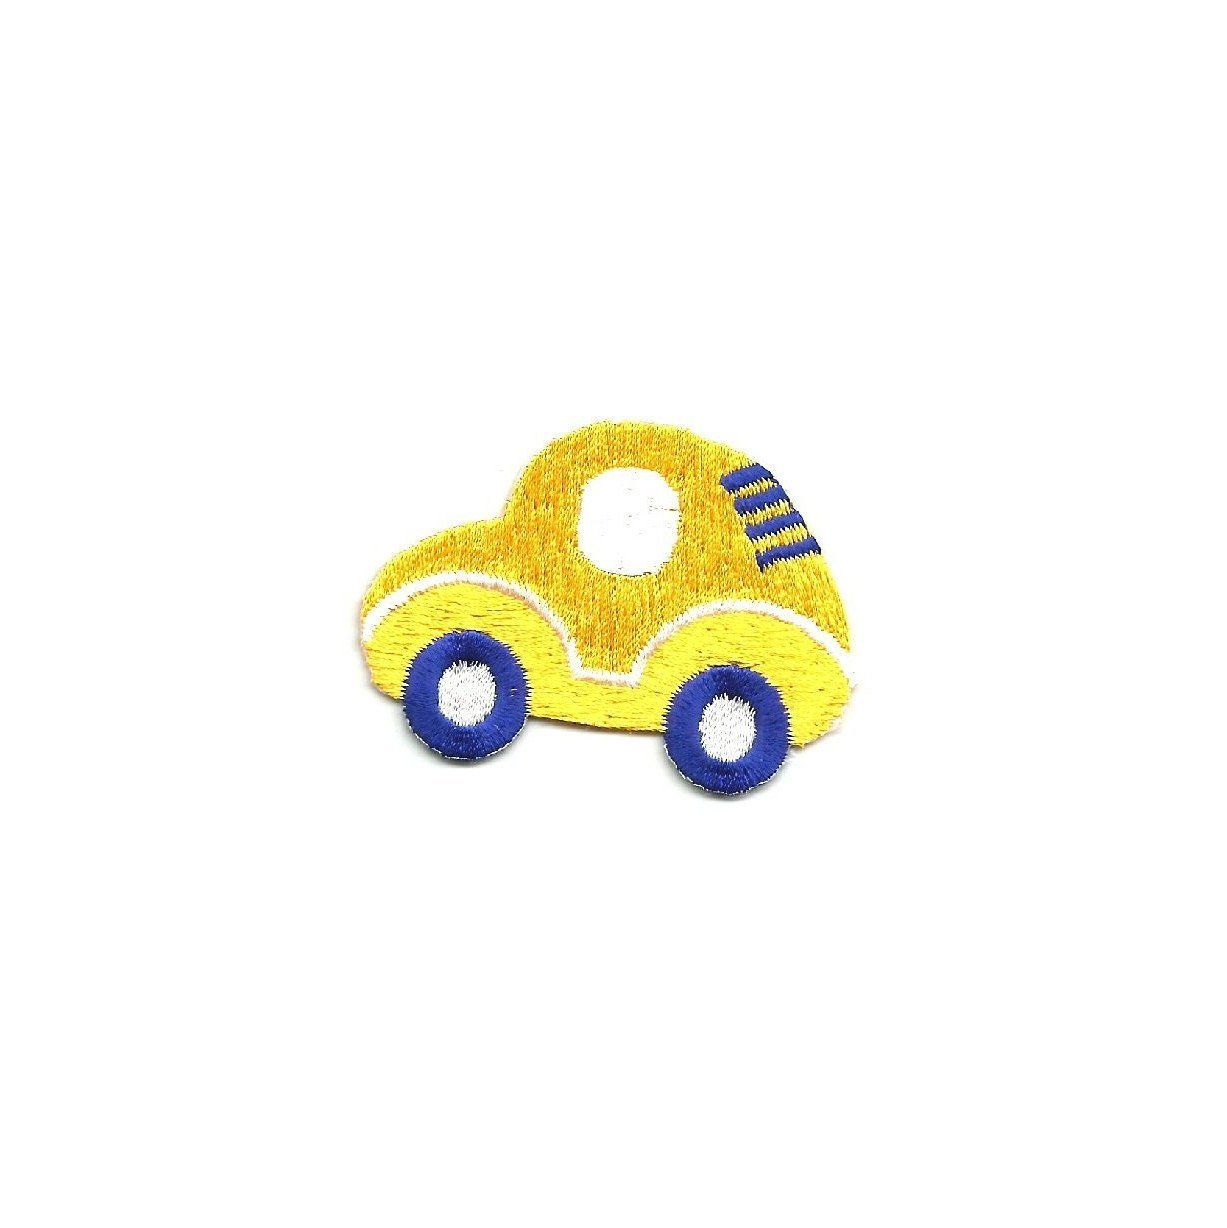 Embroidered Yellow Toy Crafts Boys Car Iron On Patch